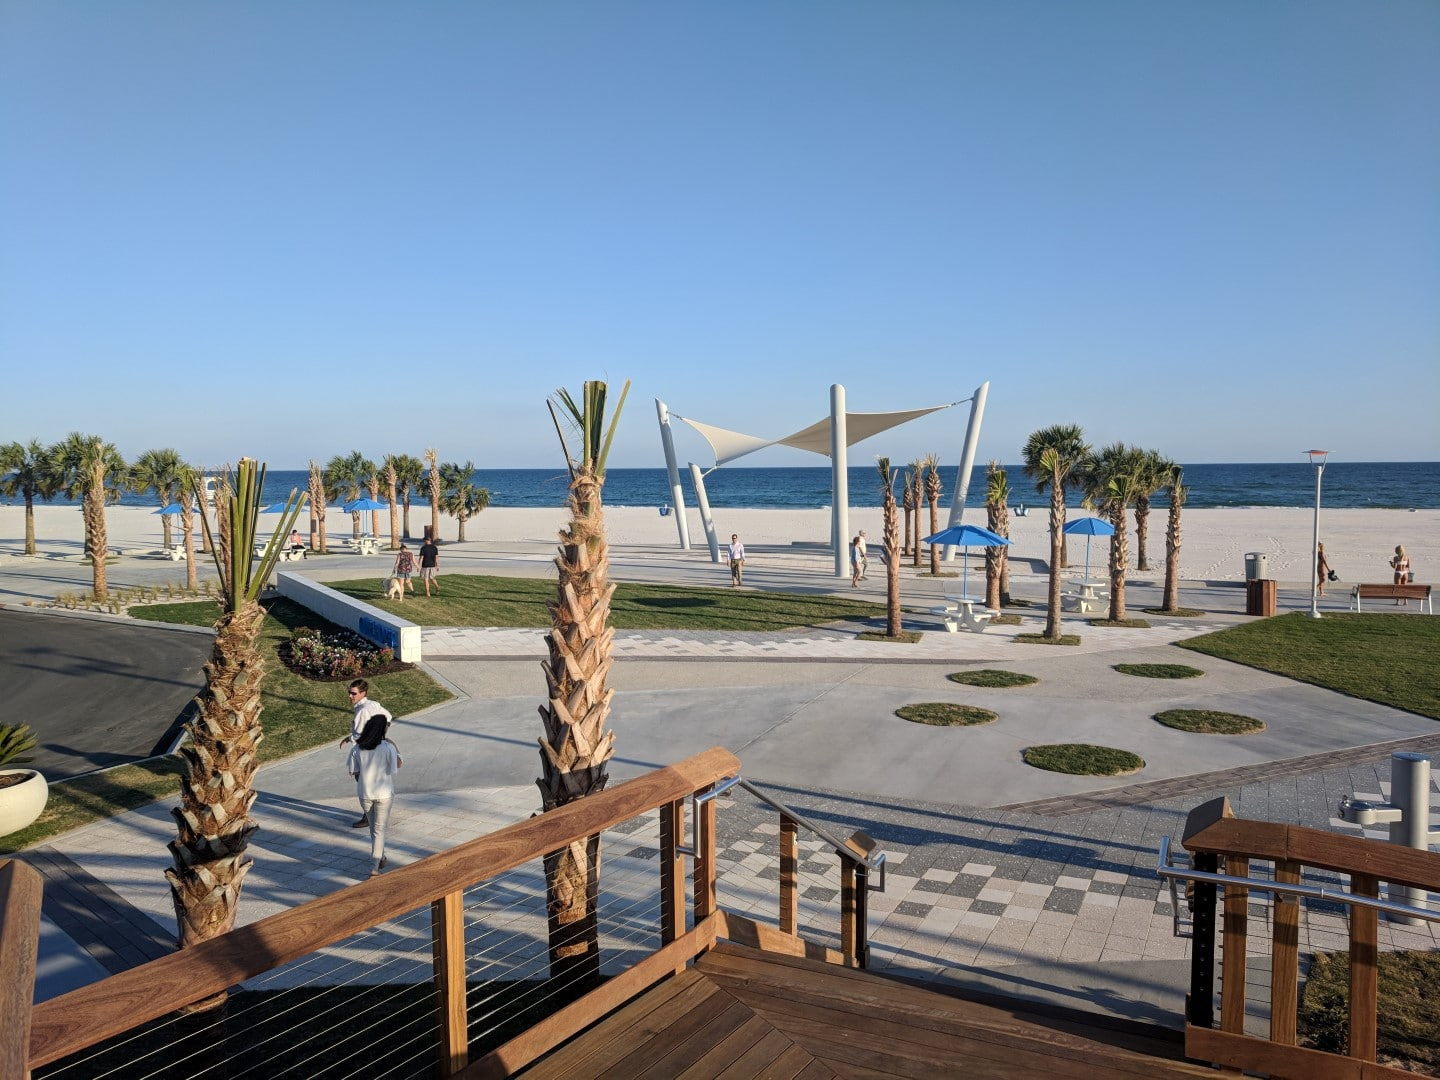 TSW IMG_20180426_181754 Gulf Place Update In The News Landscape Architecture Sustainable Design  beachfront Gulf Place Gulf Shores TSW   TSW